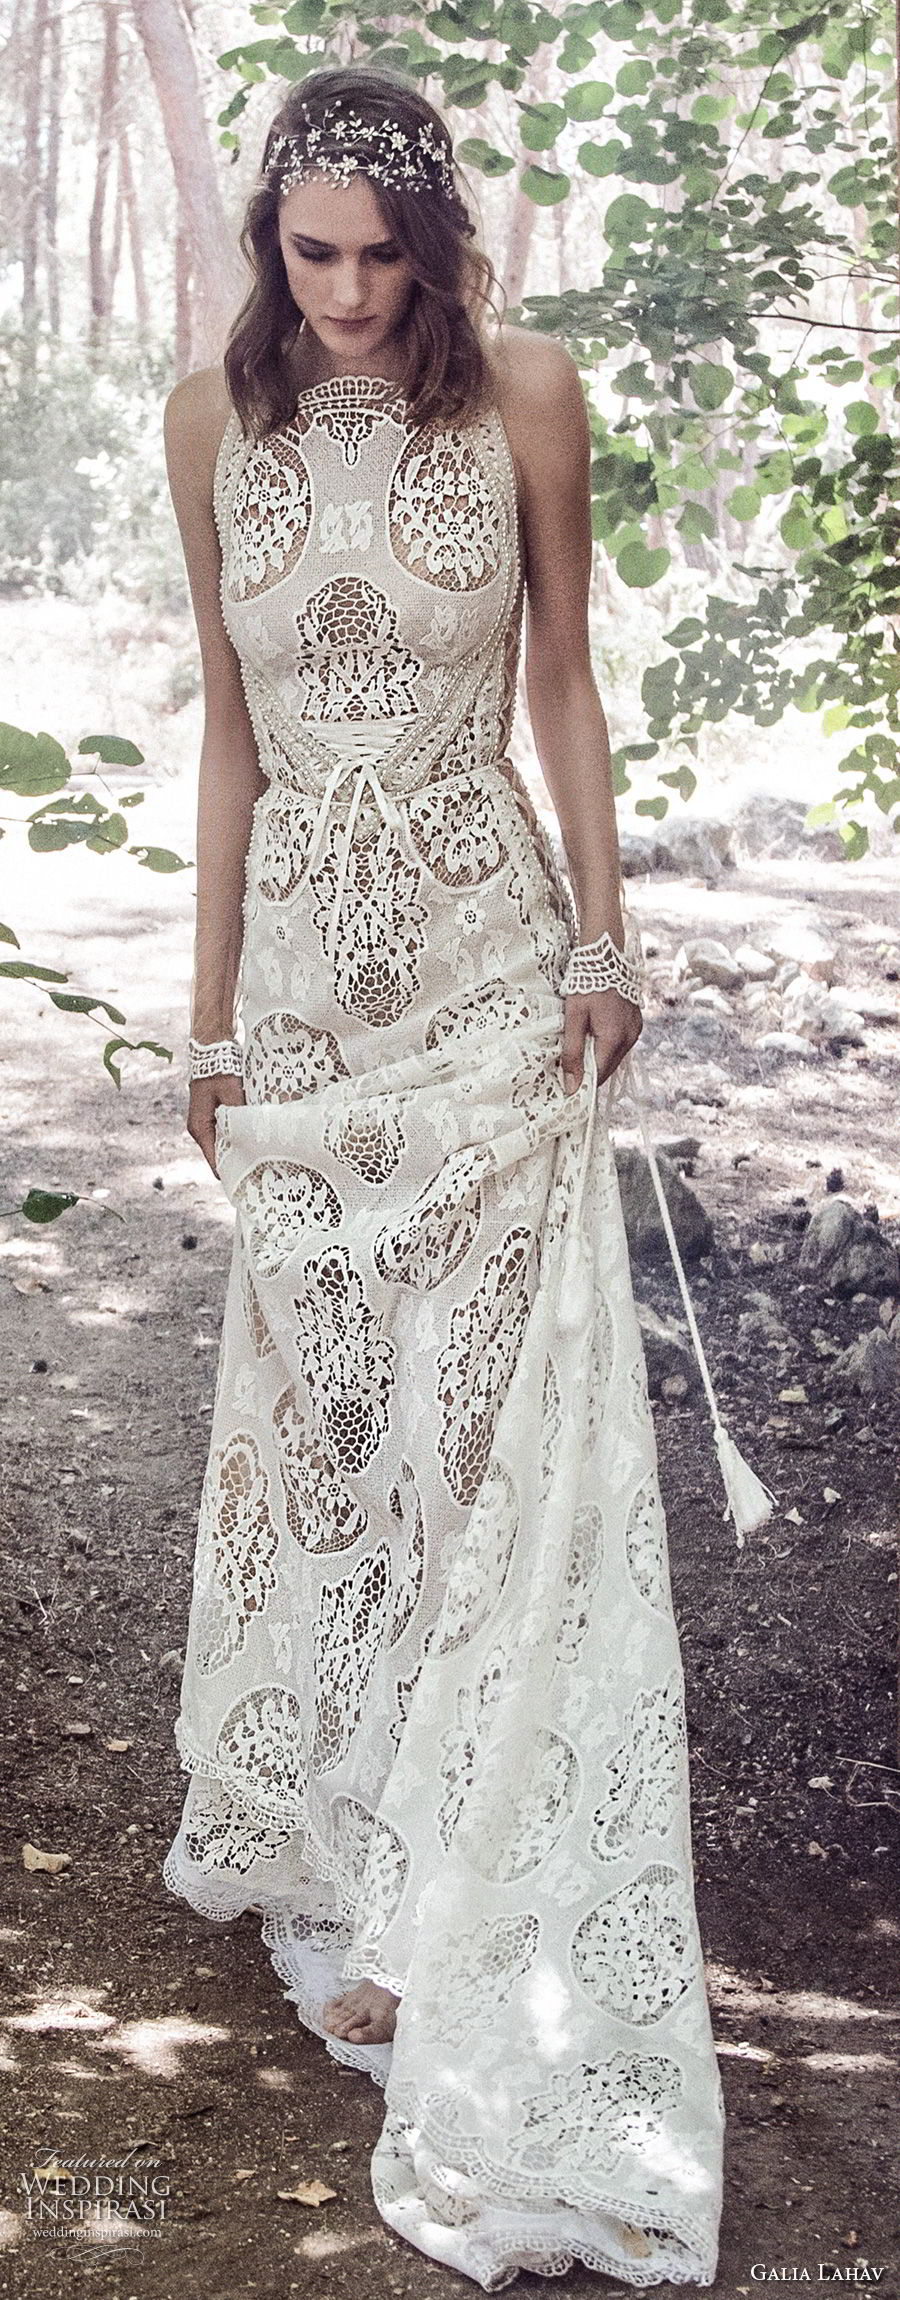 galia lahav gala 4 2018 bridal sleeveless halter neck full embellishment elegant bohemian soft a line wedding dress mid strap back short train (905) mv